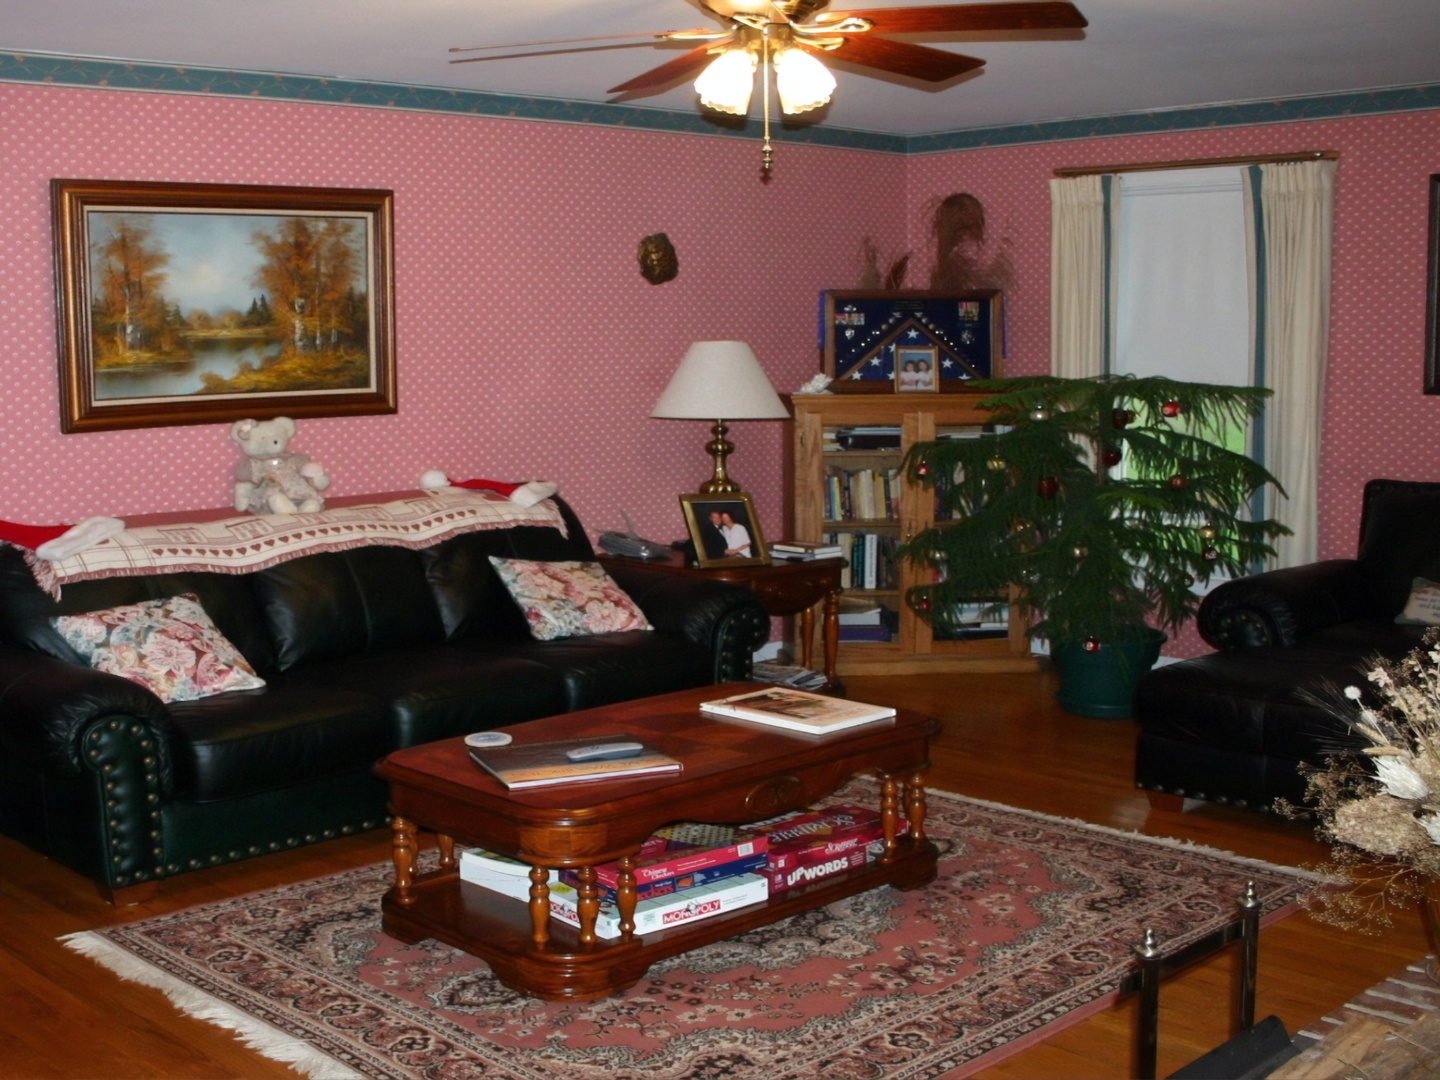 A living room filled with furniture and a flat screen tv at Middle Grove Inn.